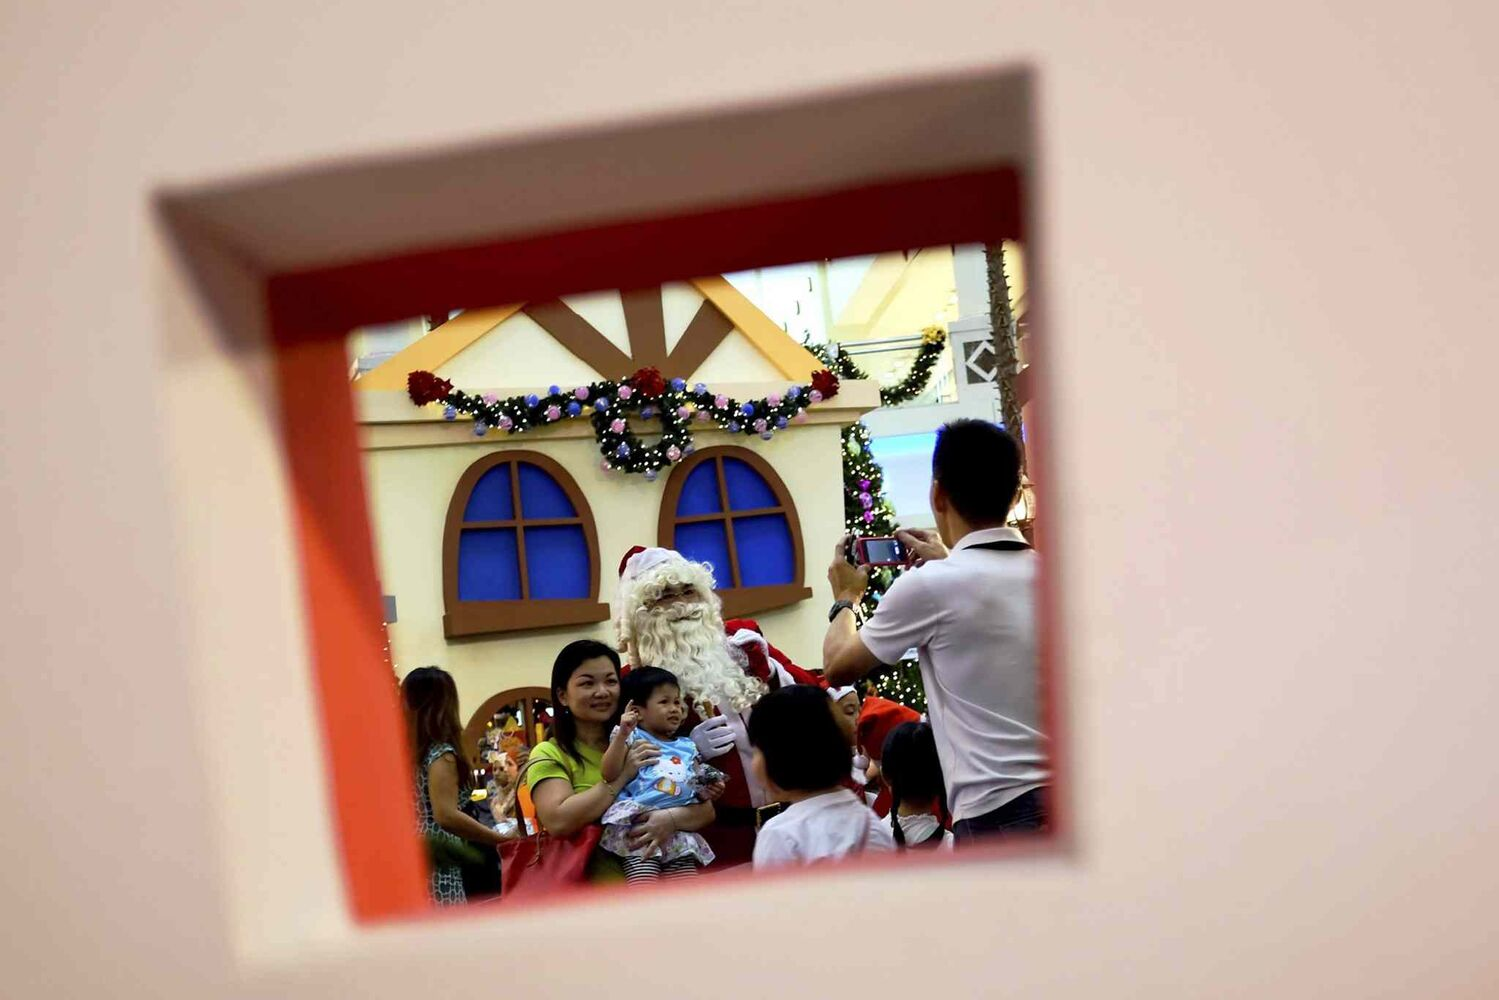 Shoppers pose for photos with a man in Santa Claus costume on Christmas Day at a shopping mall in Kuala Lumpur, Malaysia. (The Associated Press)